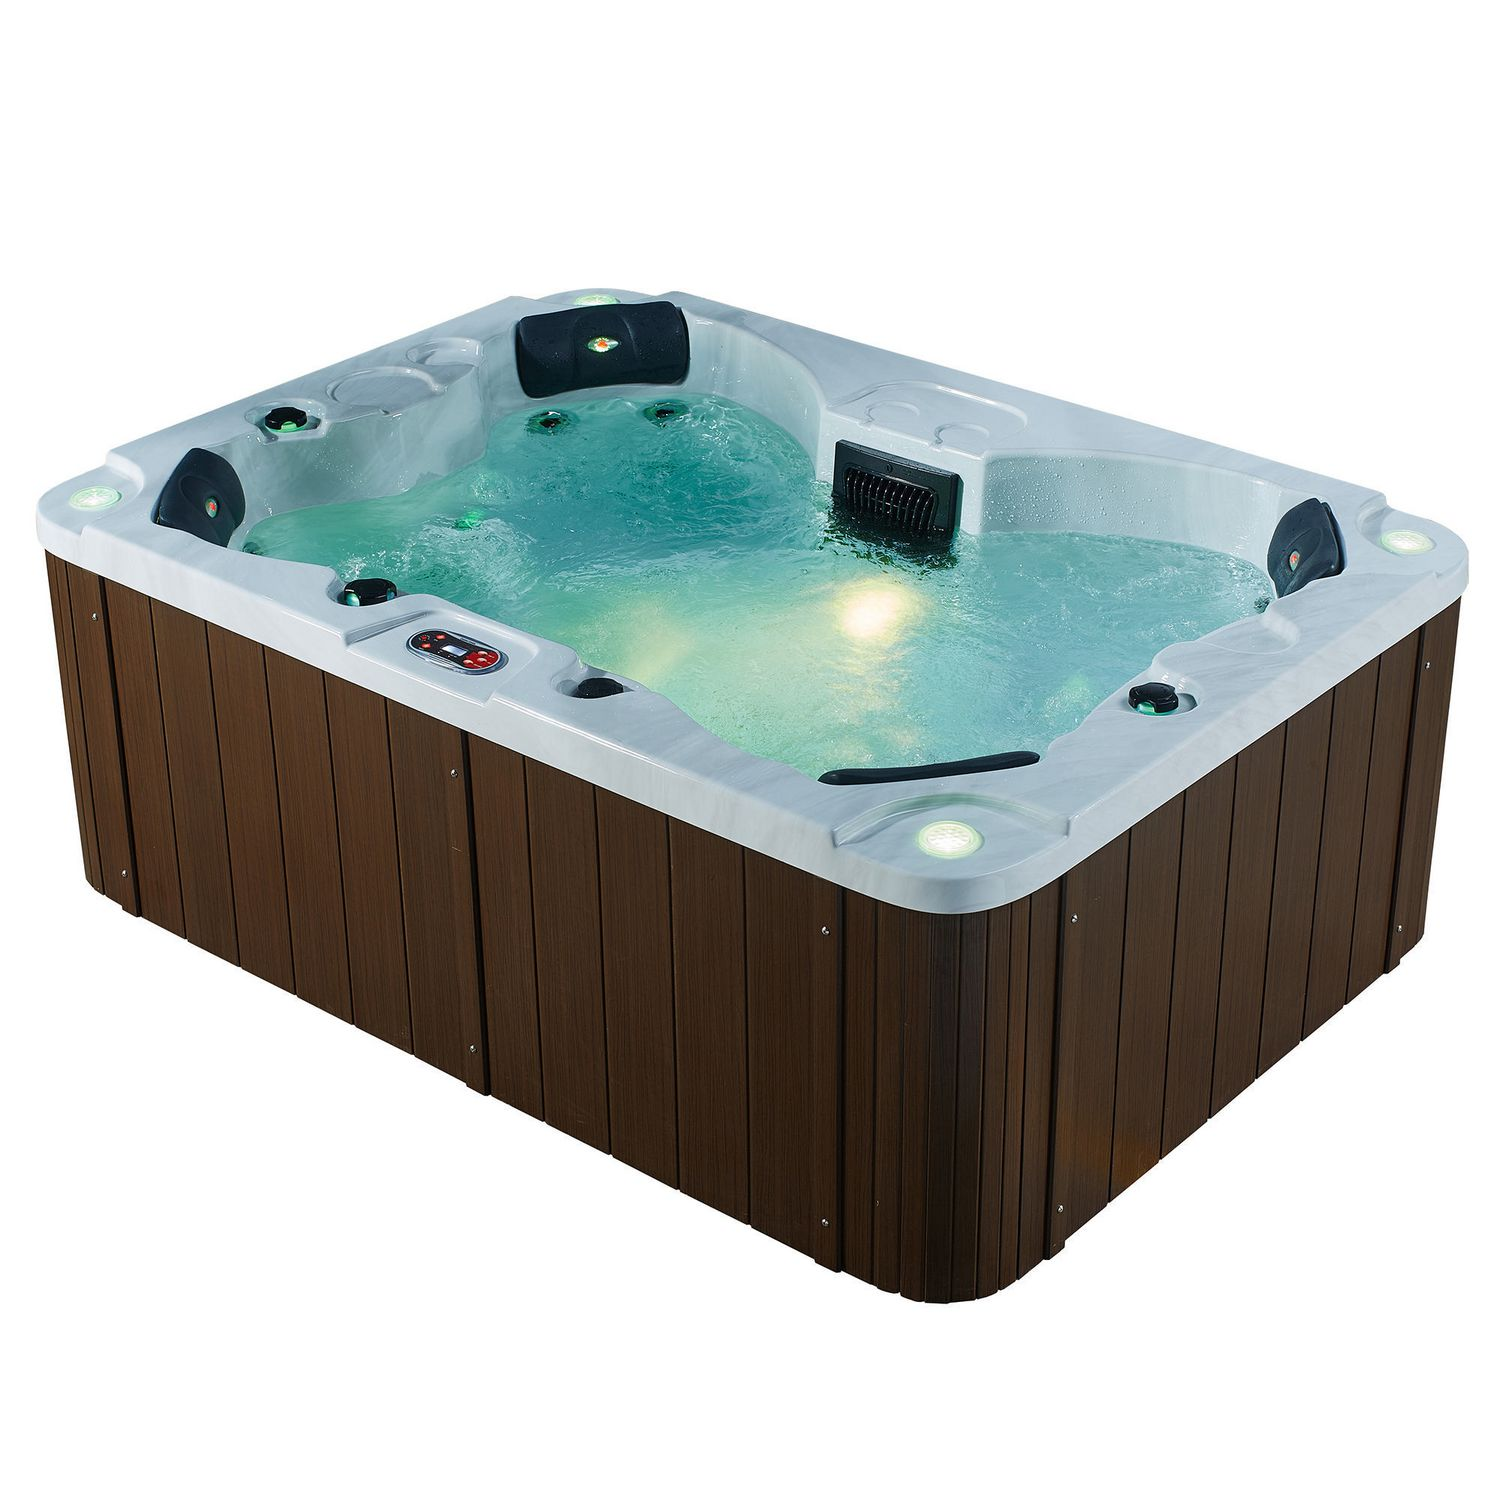 prix jacuzzi 4 places spa complet kit spa spa rigide rond spark 4 personnes 24 hydro jets. Black Bedroom Furniture Sets. Home Design Ideas